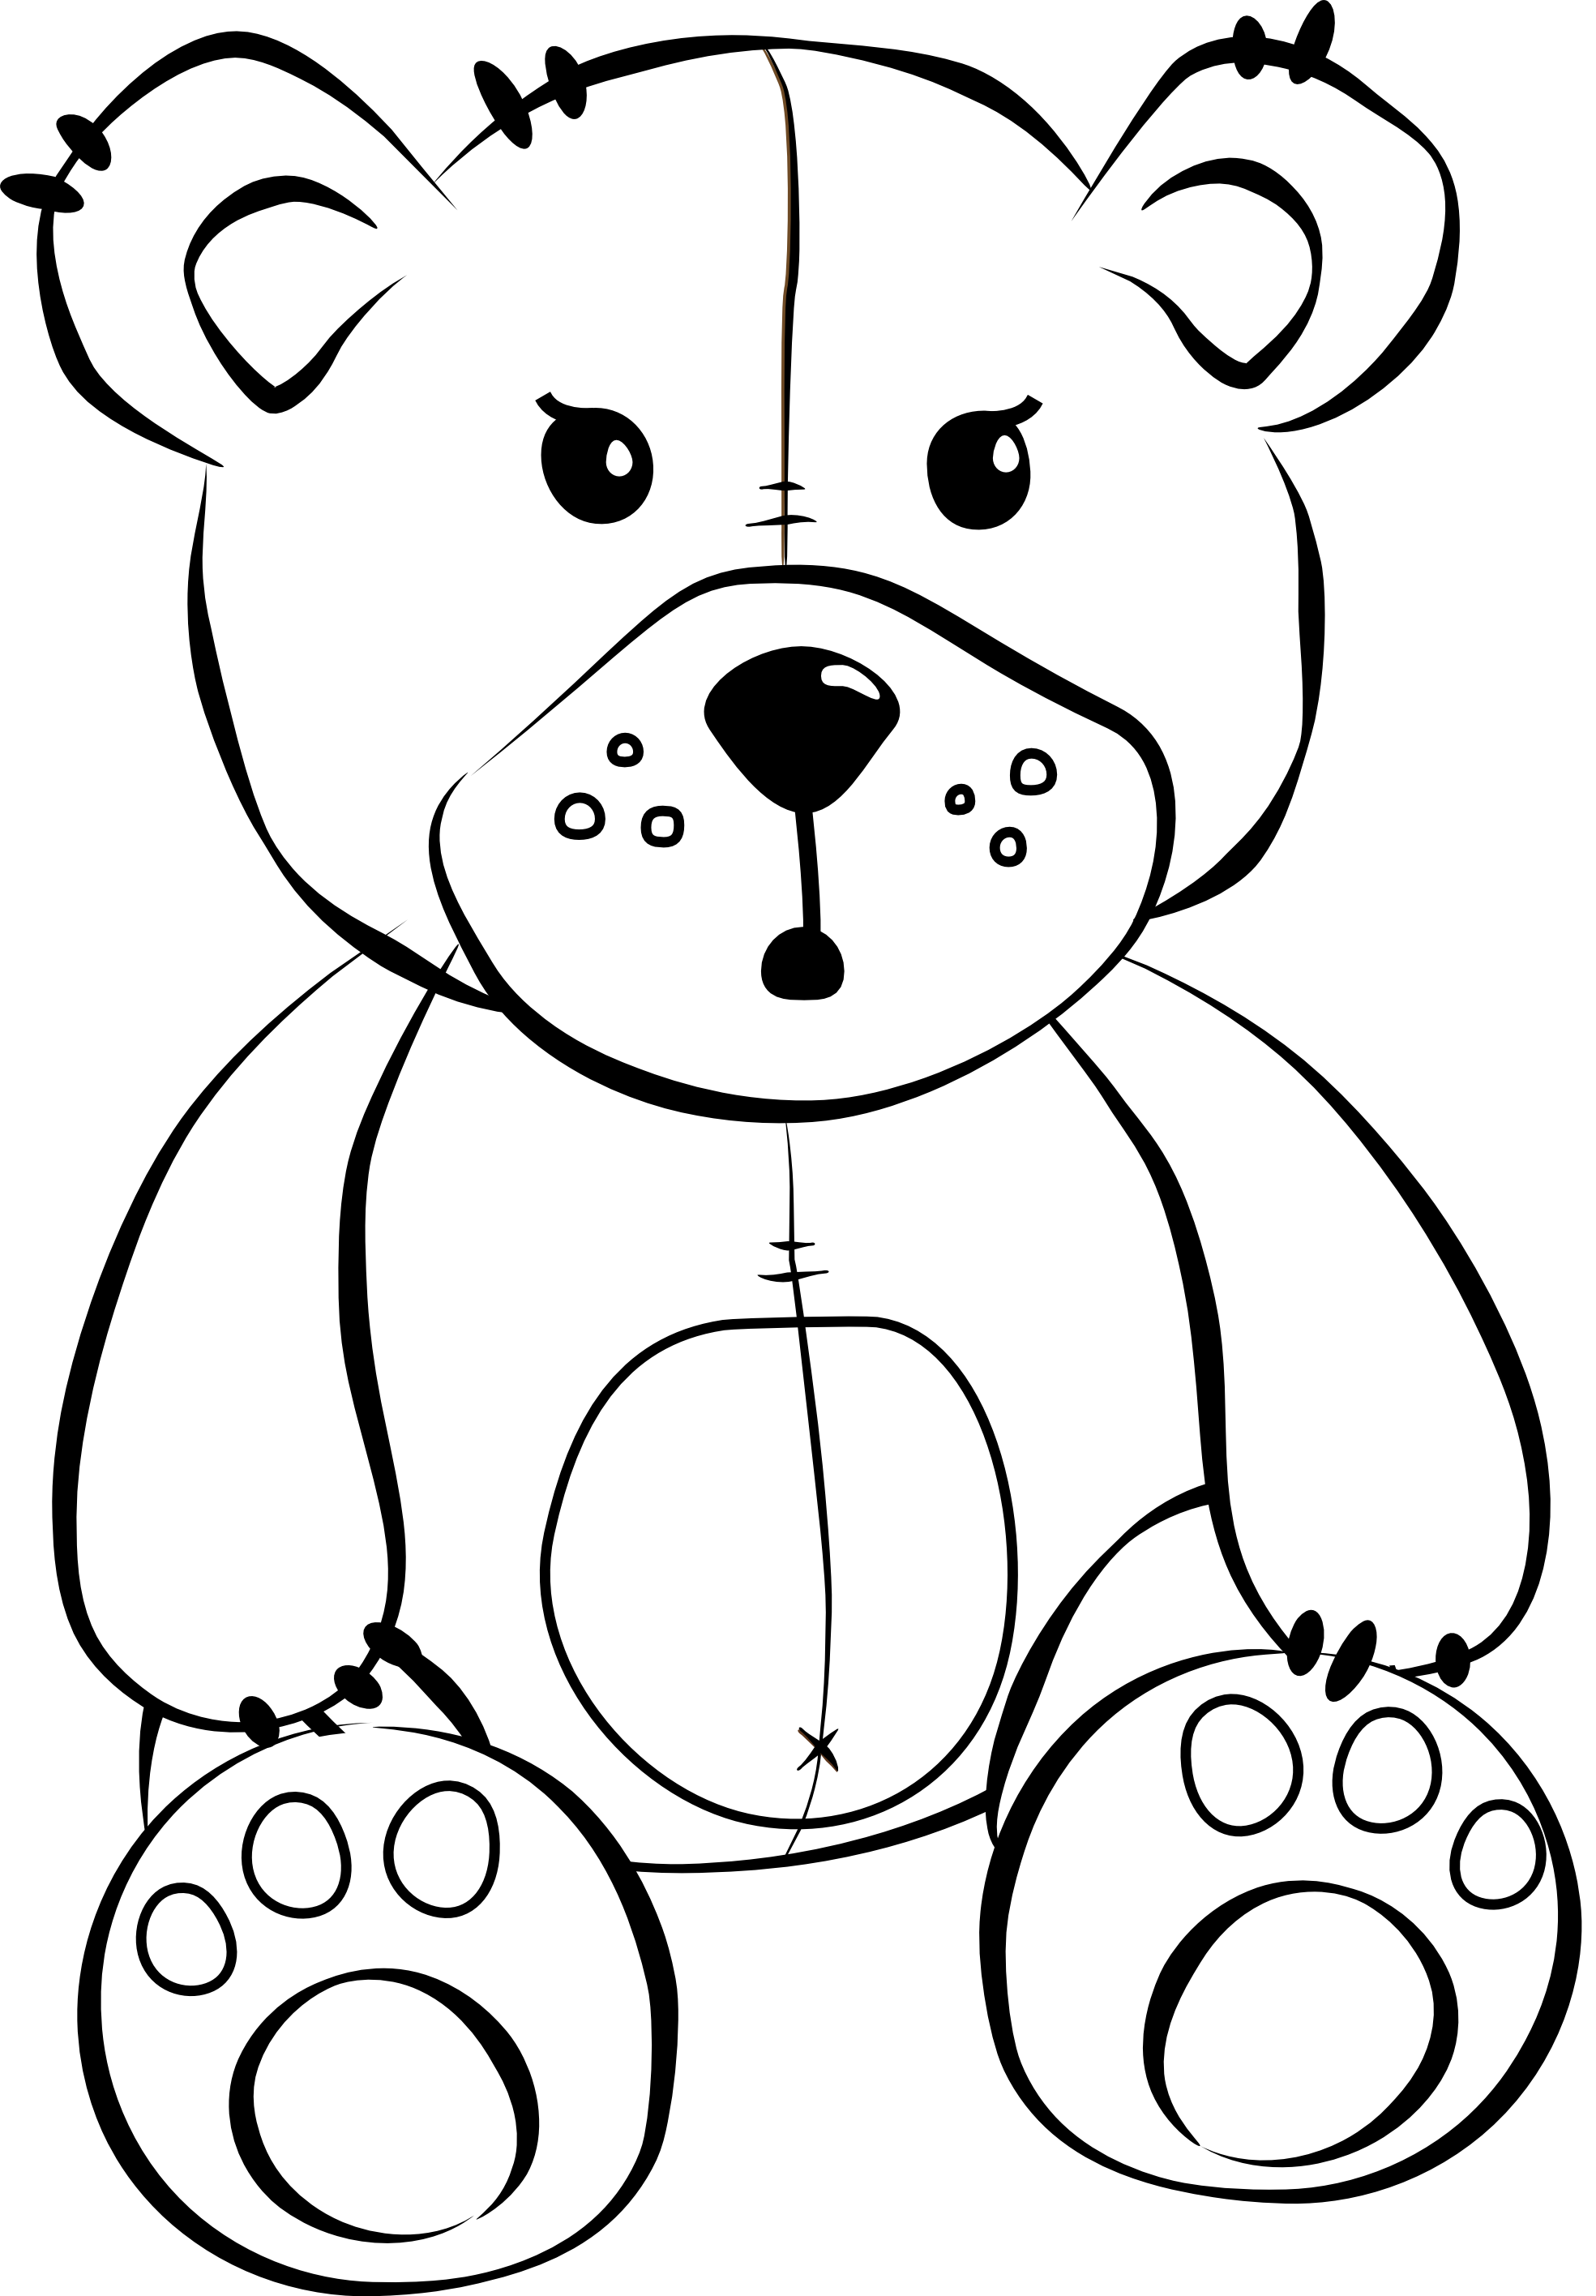 Stuffed Animals Online Coloring Page | Online coloring pages ... | 2832x1969